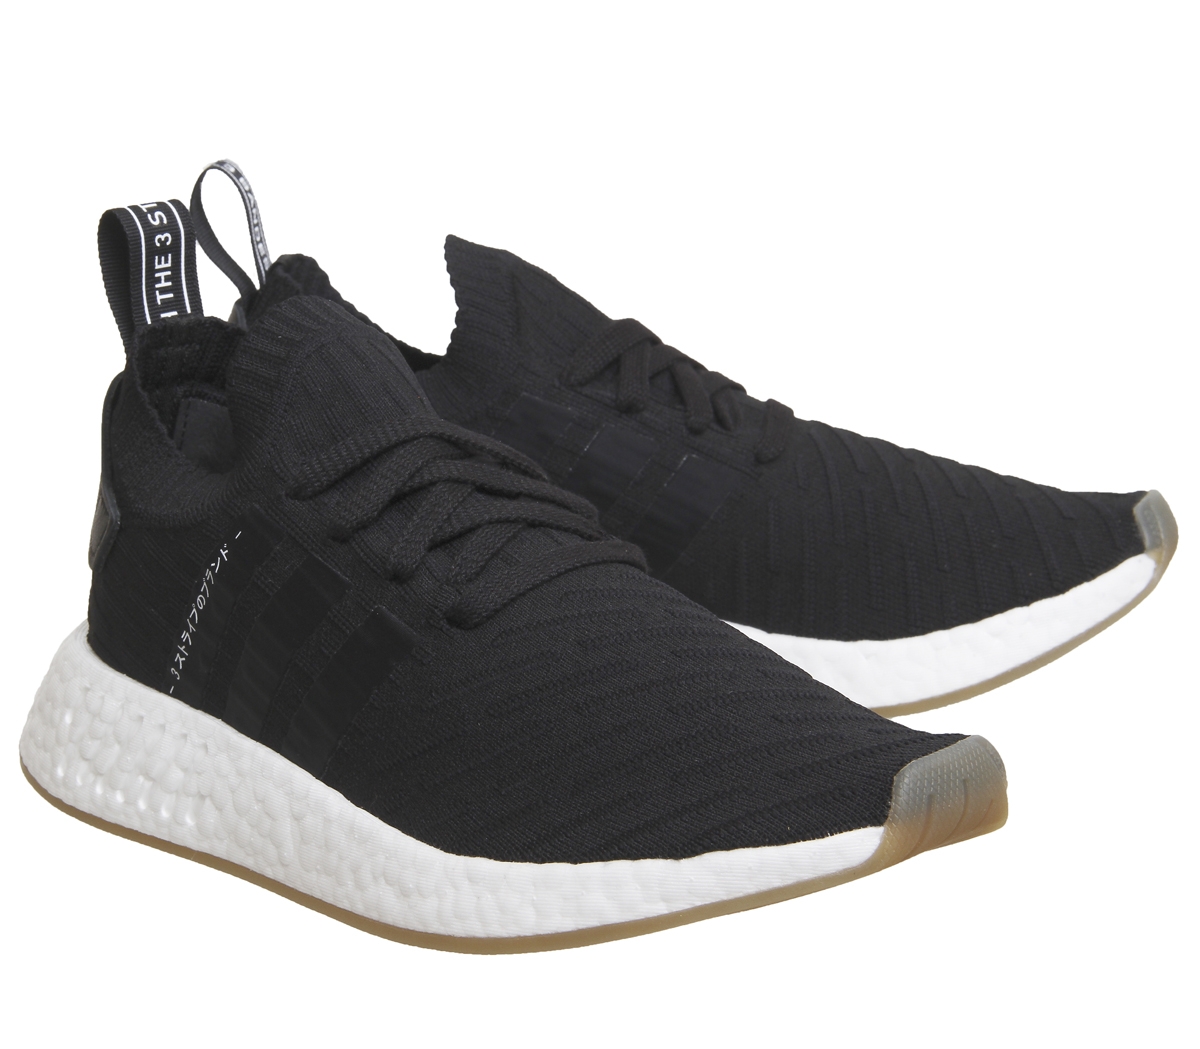 a96debfcd Mens Adidas Nmd R2 Pk Trainers Black White Trainers Shoes